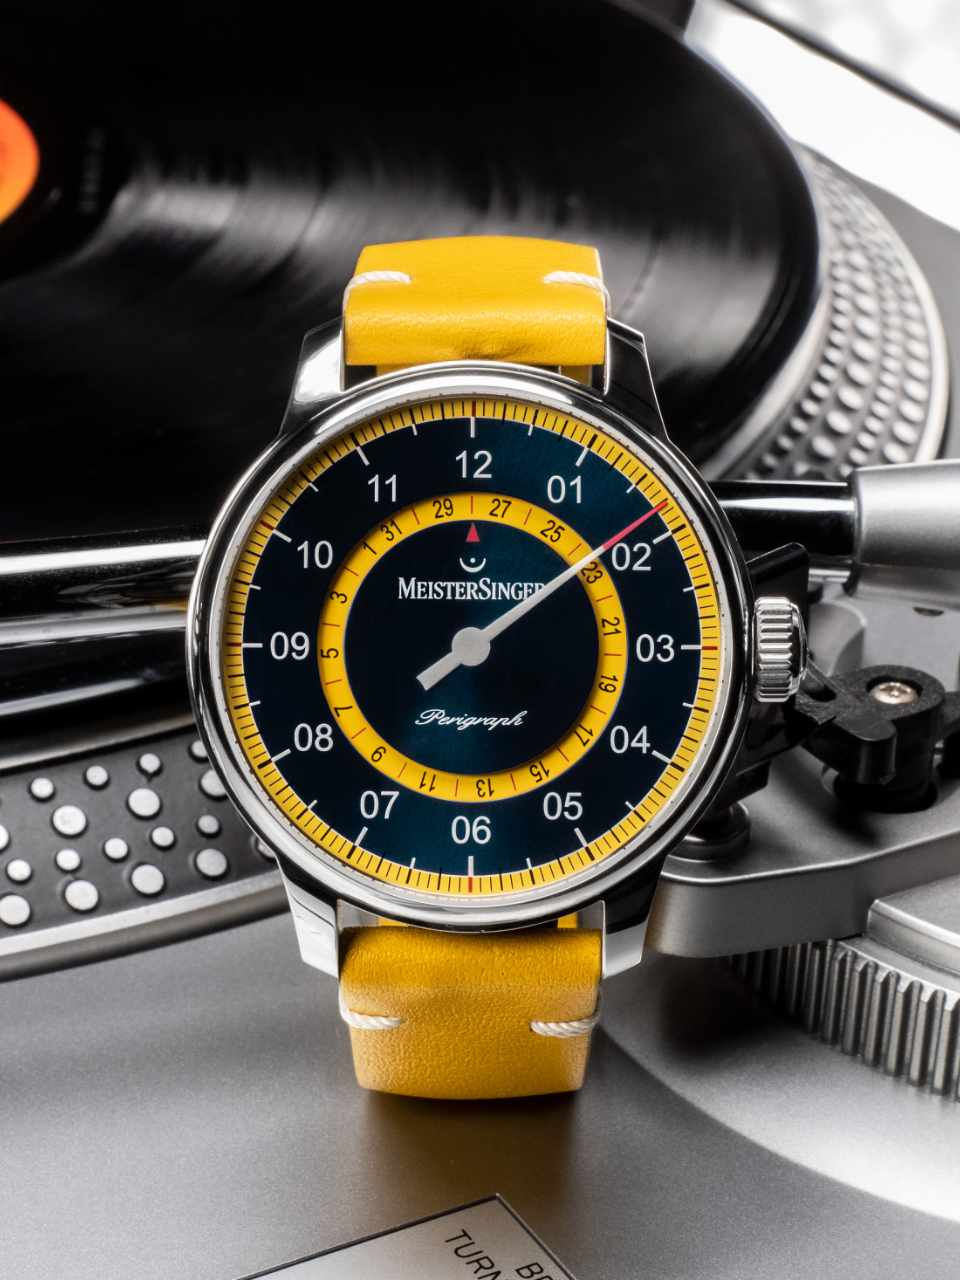 Meistersinger Perigraph Mellow Yellow S-AM1025